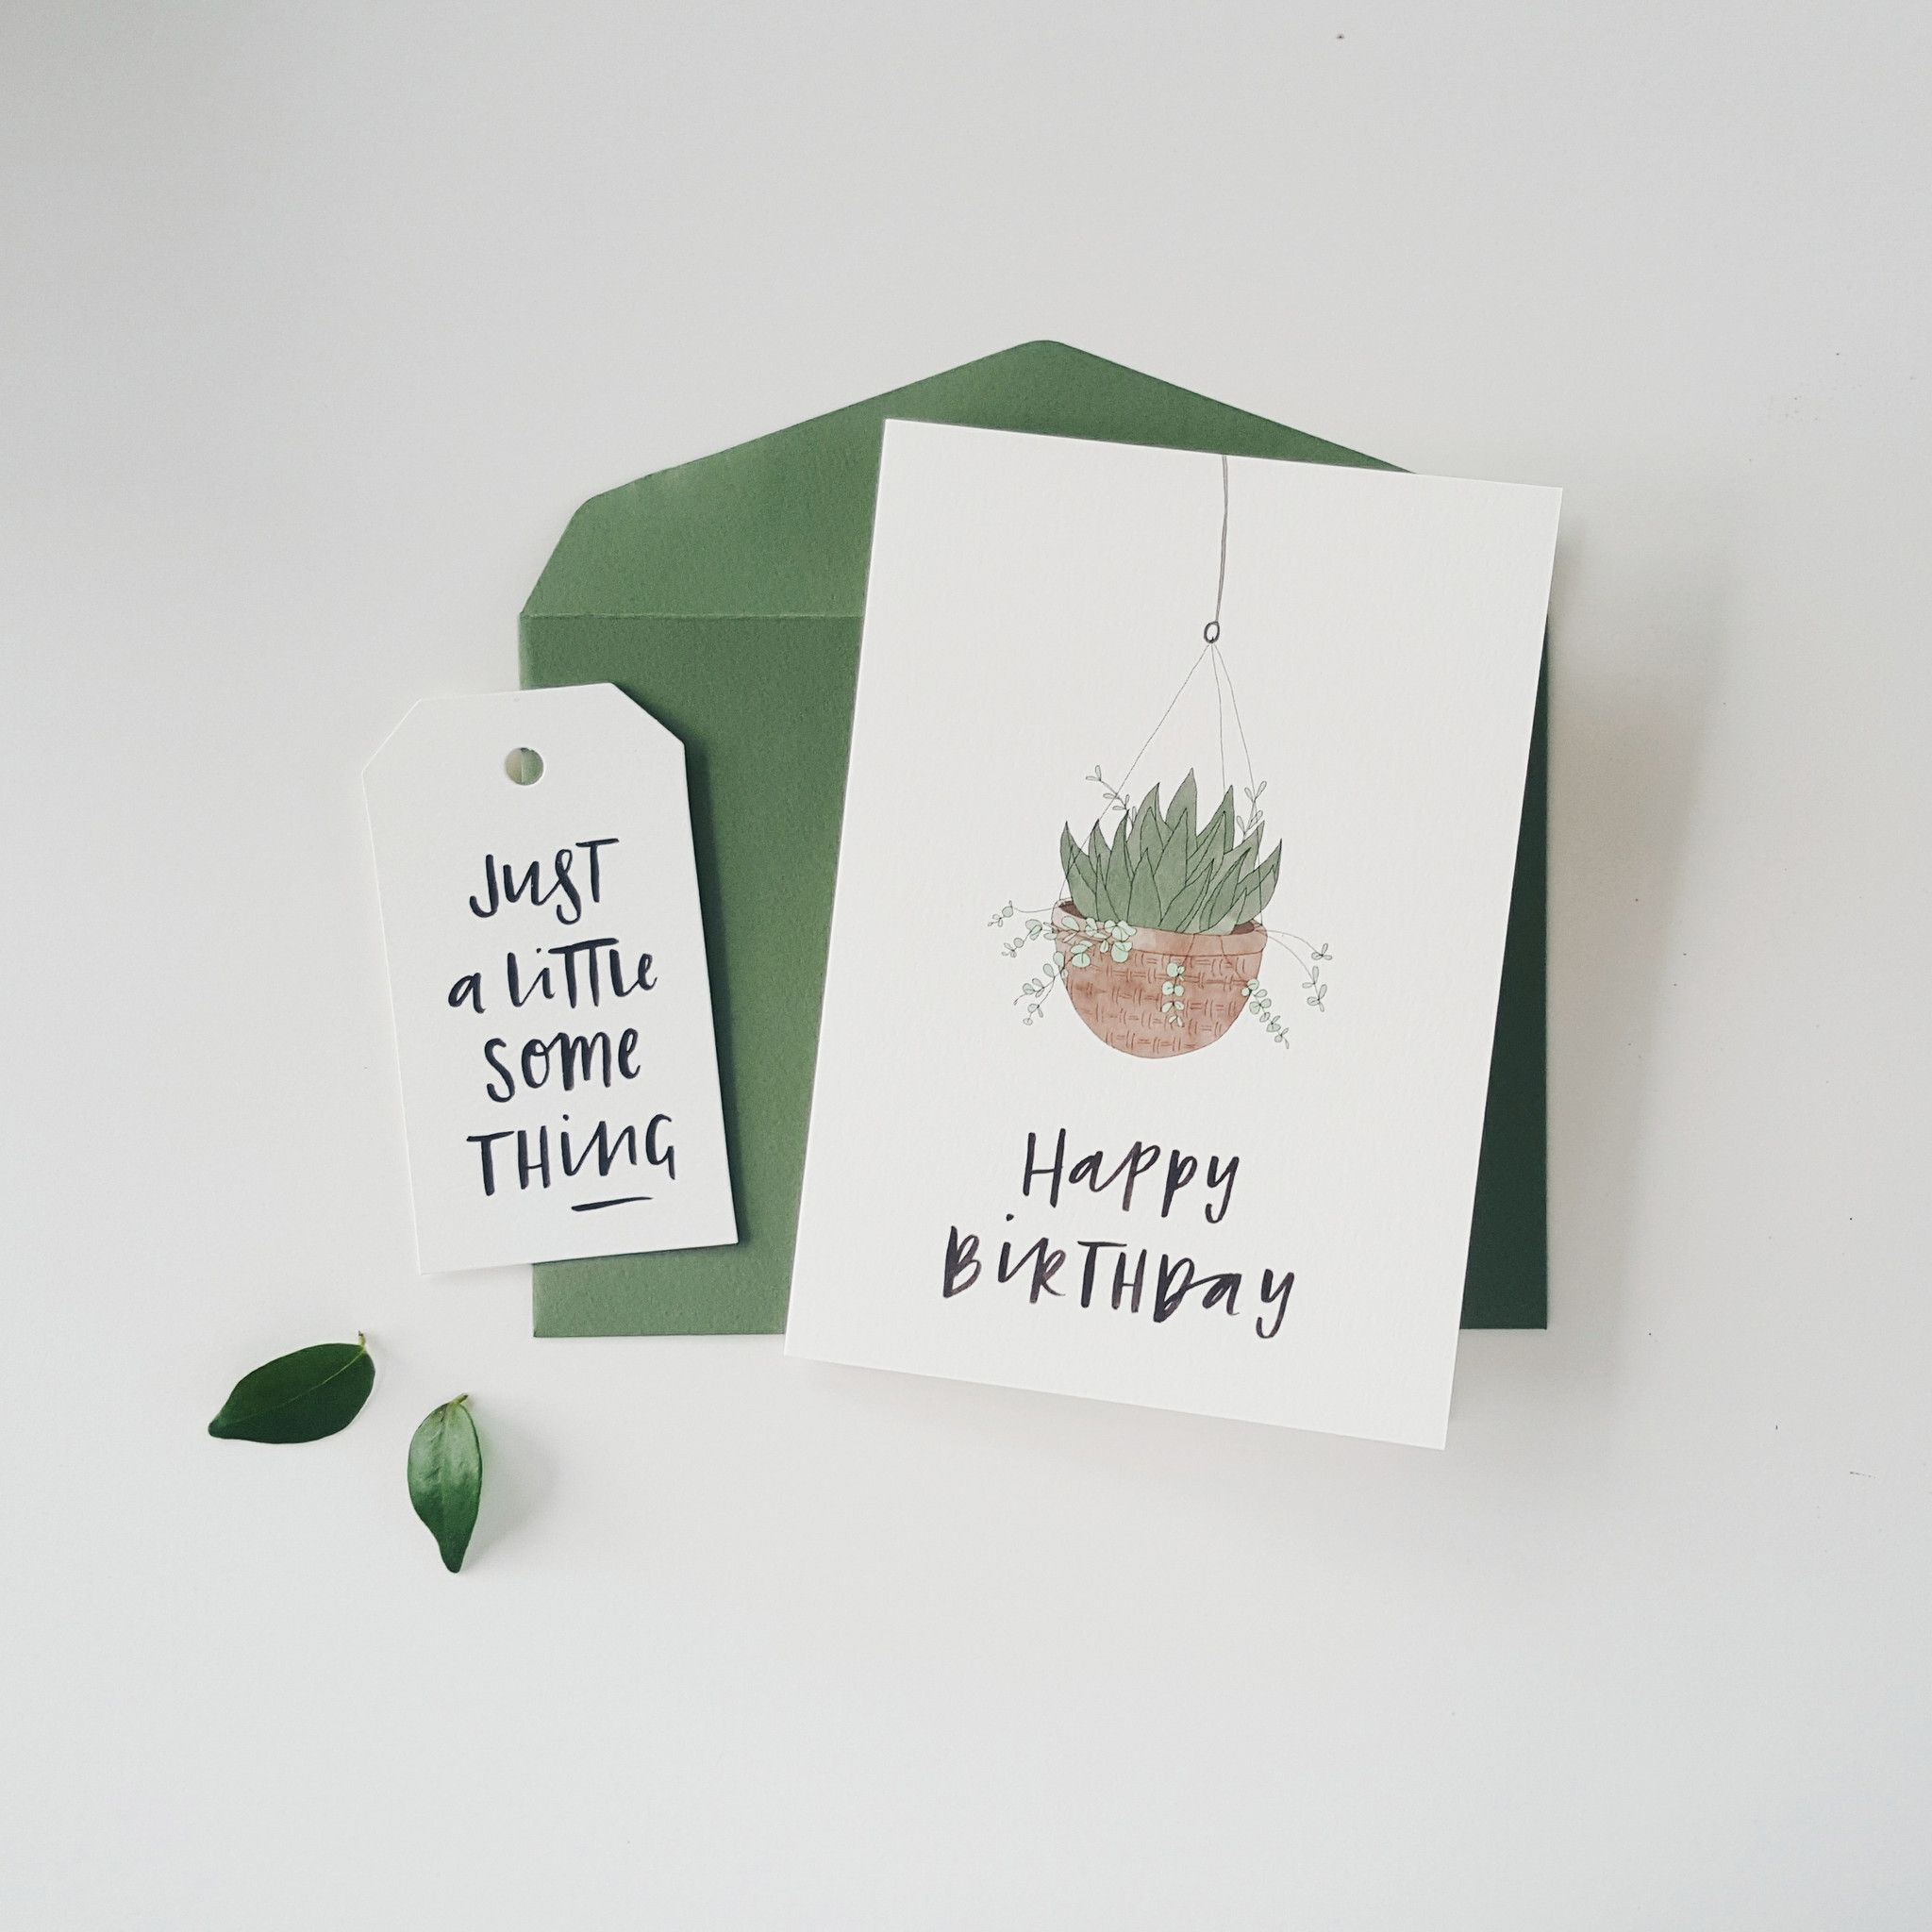 Hanging Plant Greeting Card.  Australian made stationery by In the Daylight.